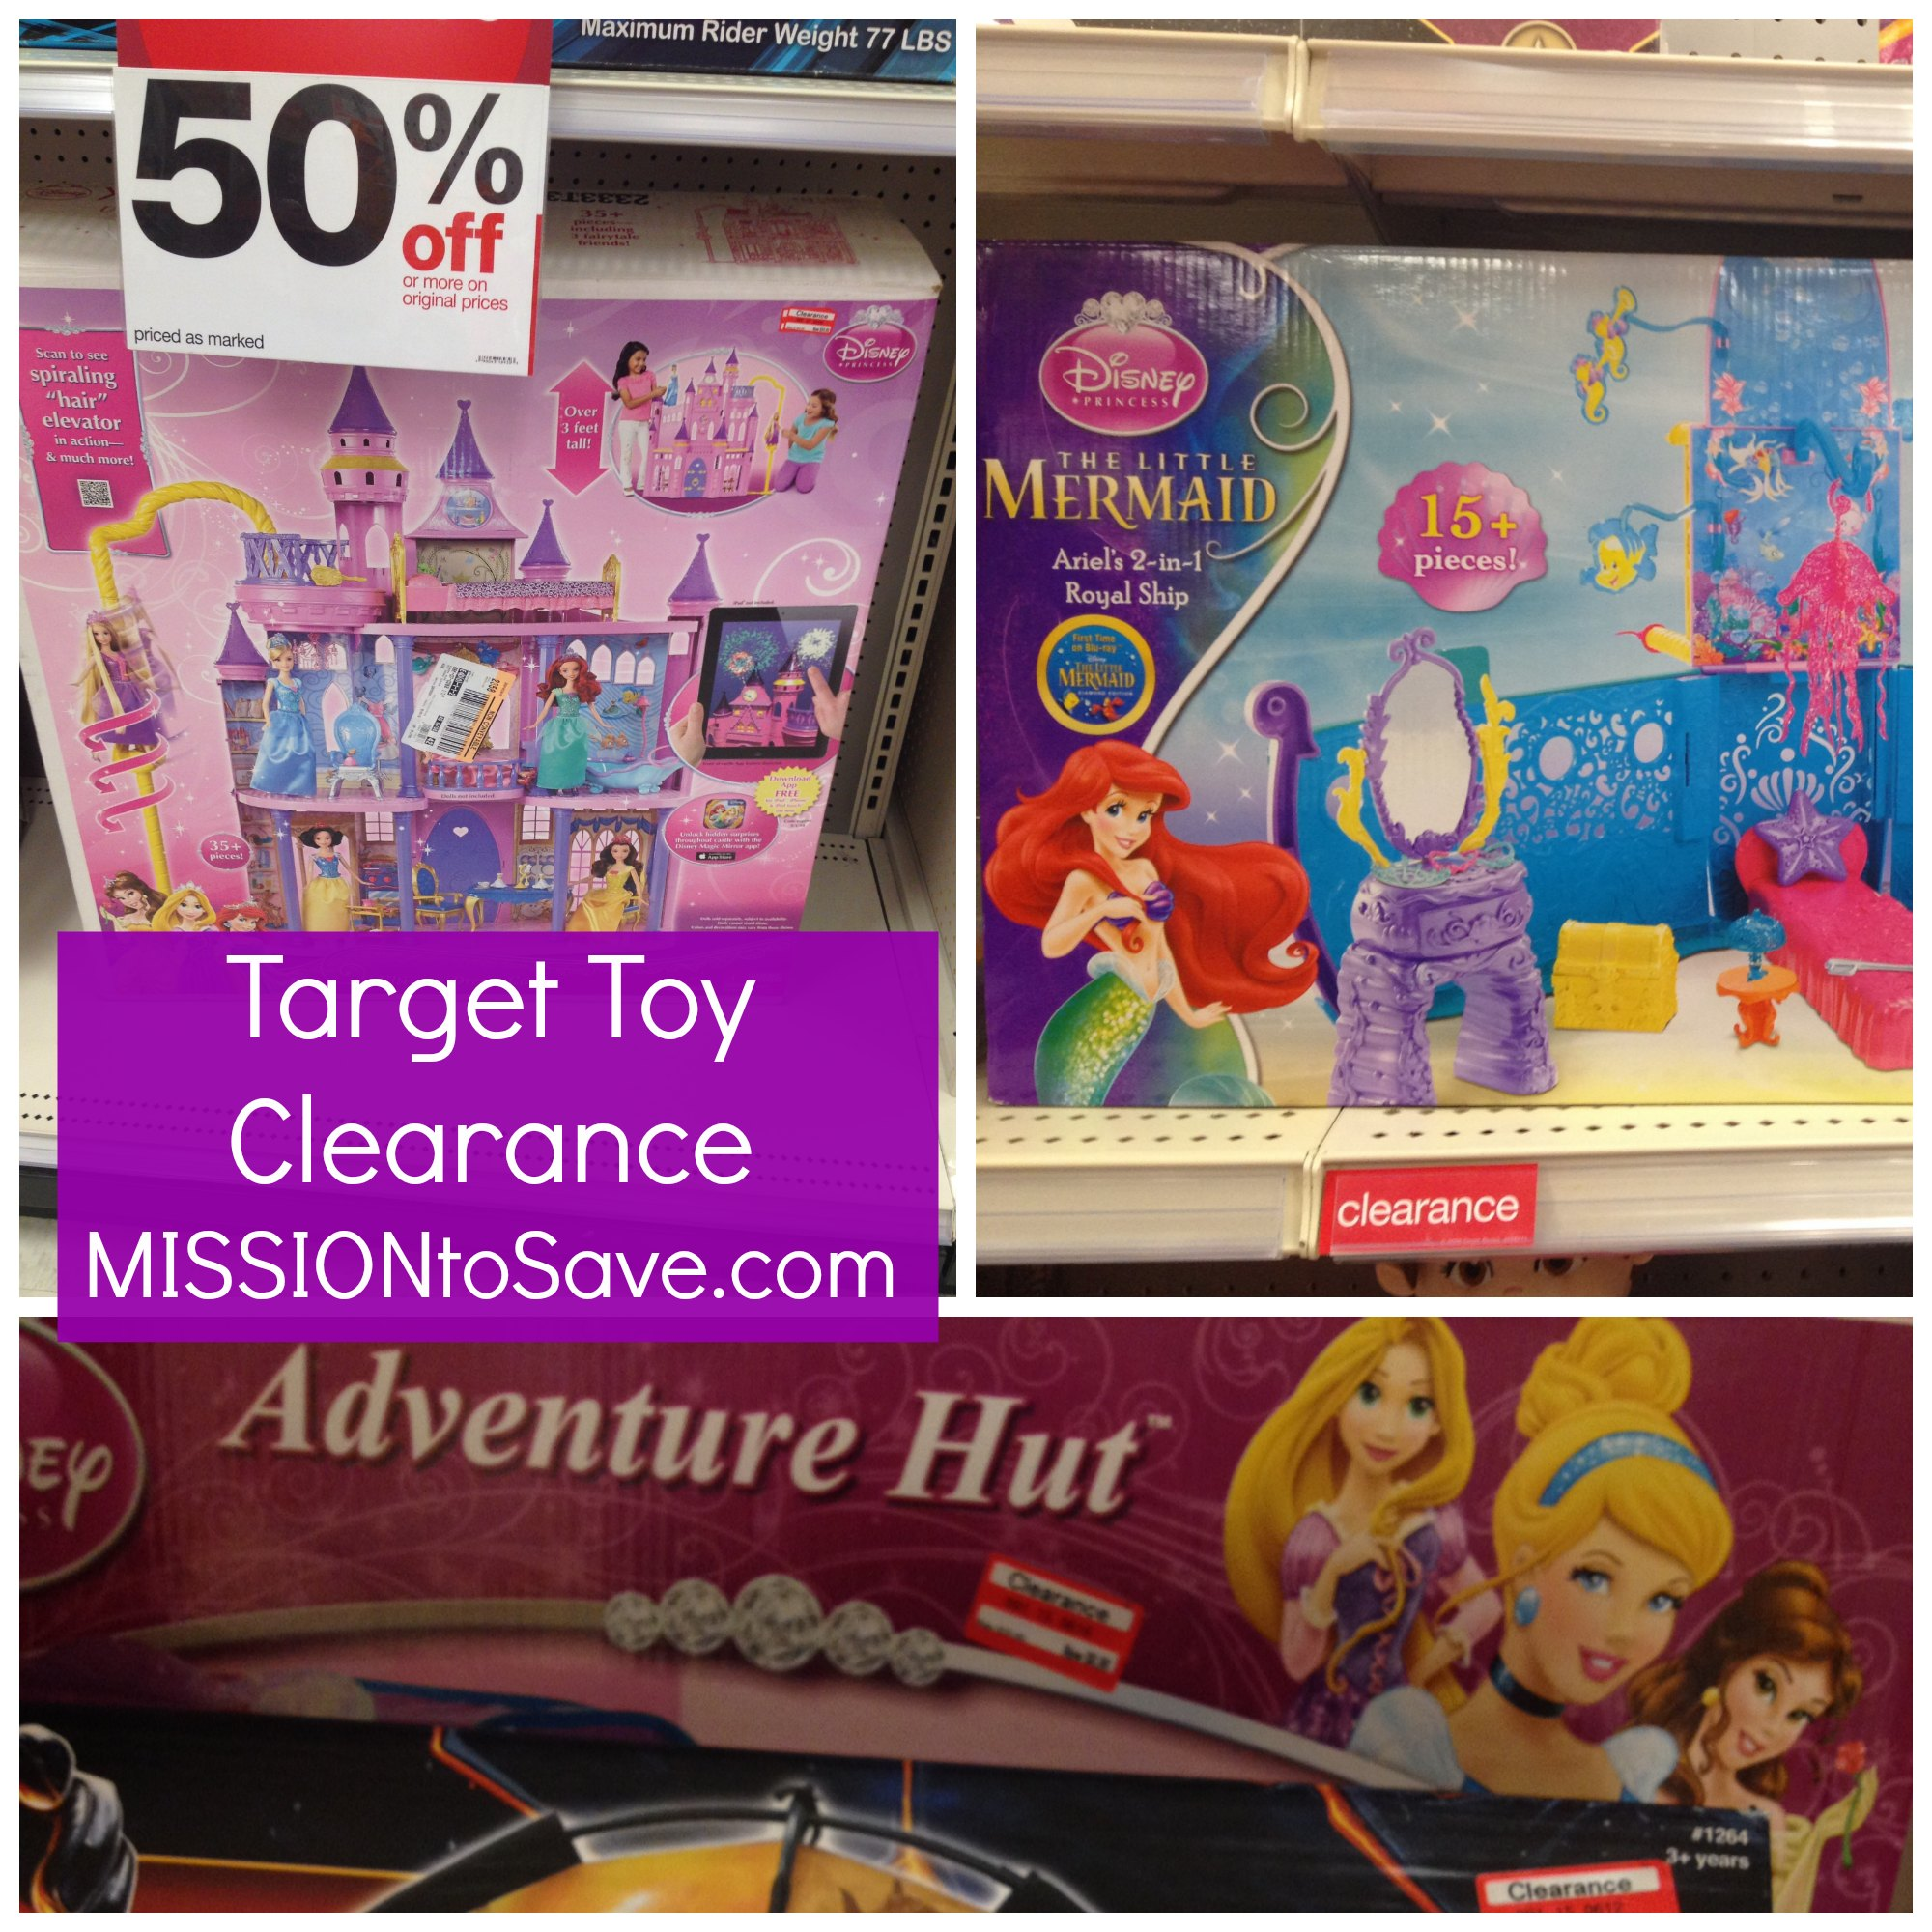 Target Toy Clearance, 50-70% Off!